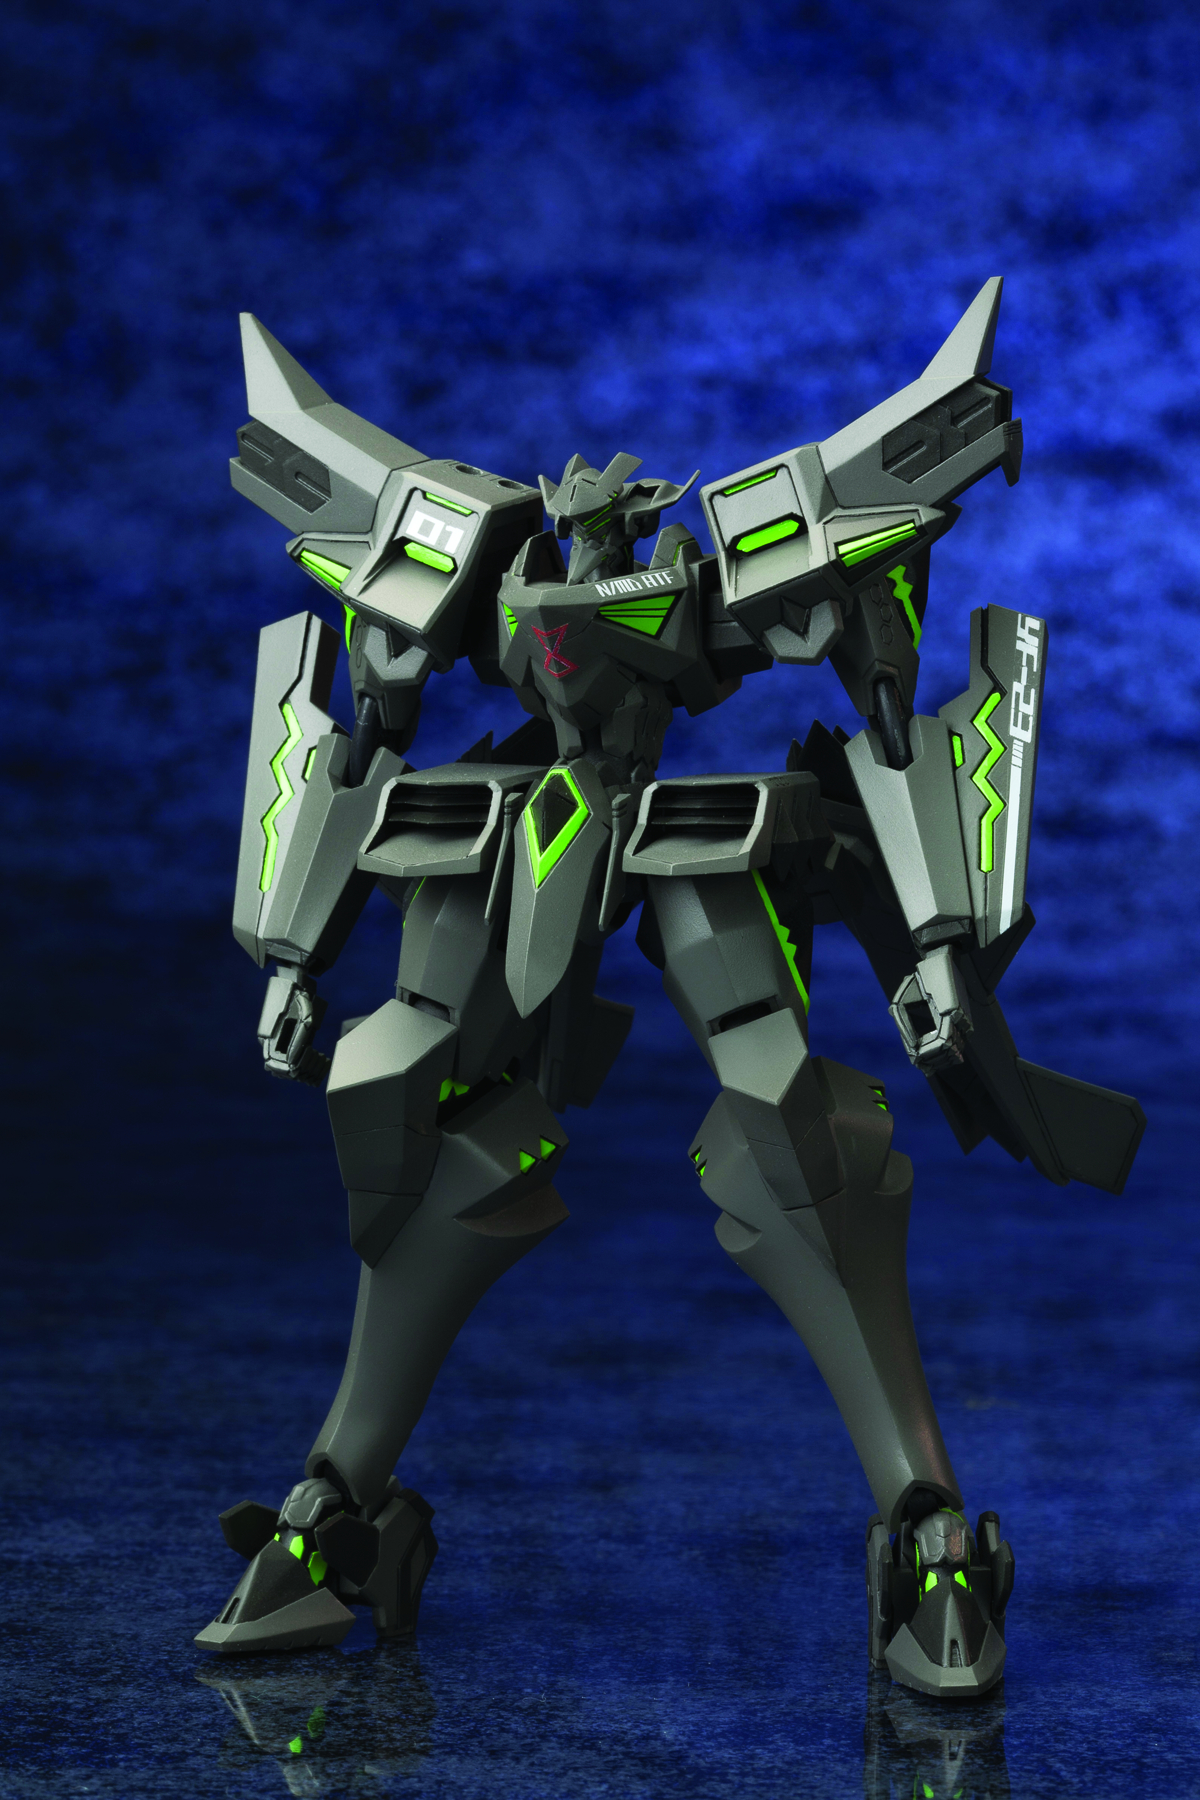 MUV-LUV ALT YF-23 BLACK WIDOW II PLASTIC MDL KIT